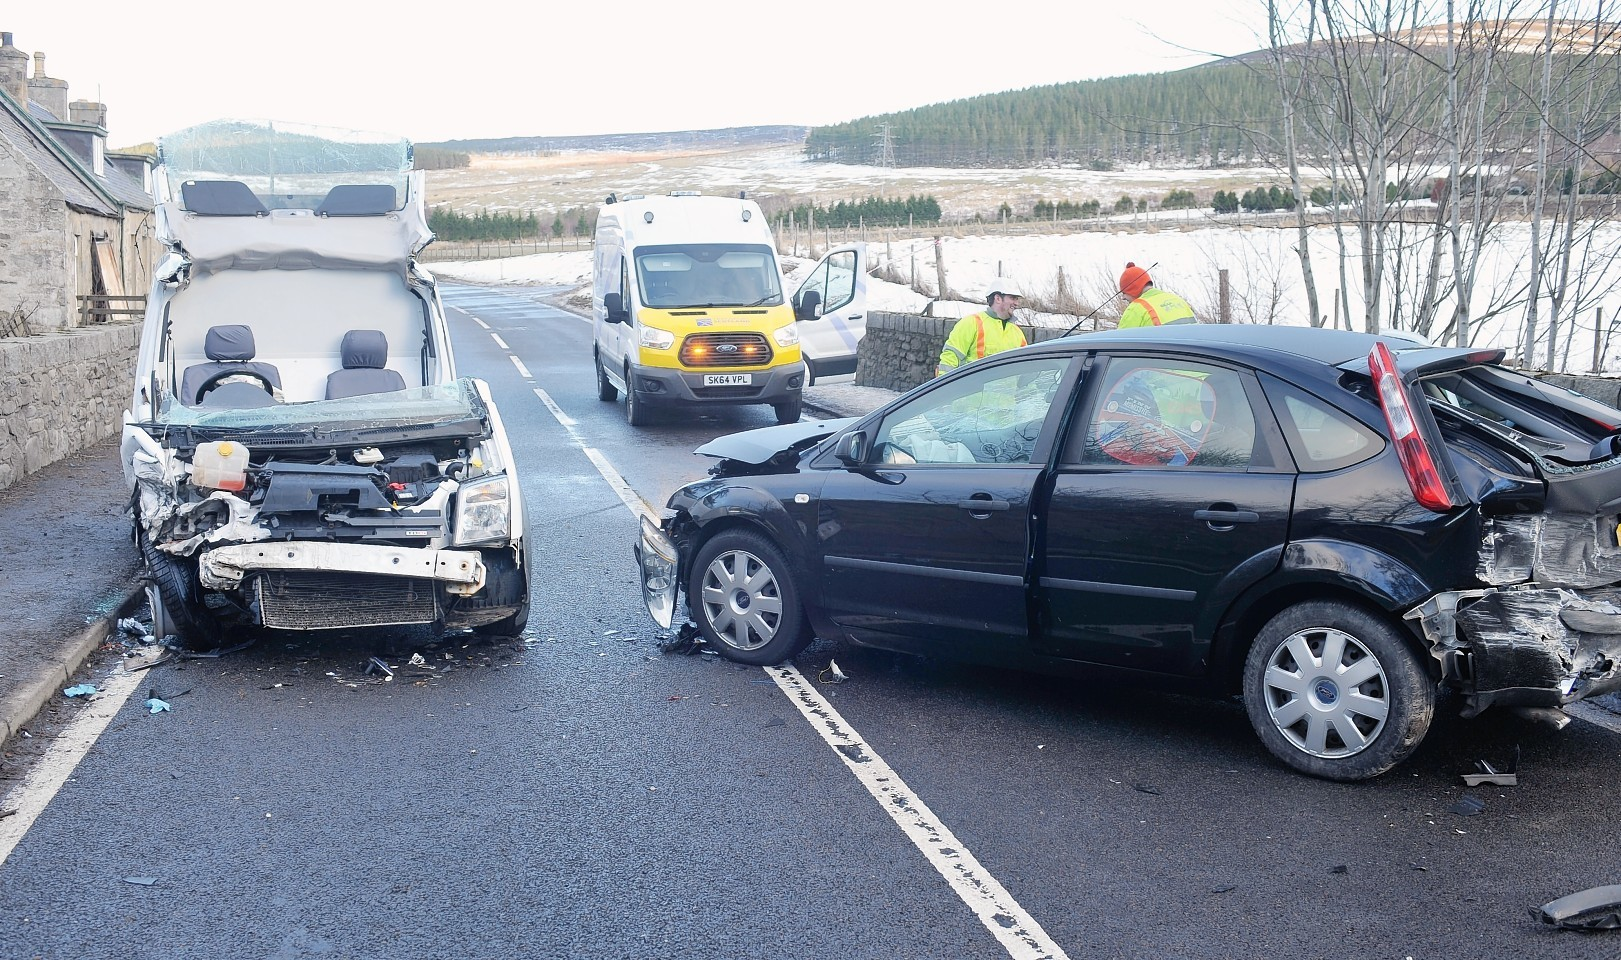 The scene of the crash on the A95 at Advie